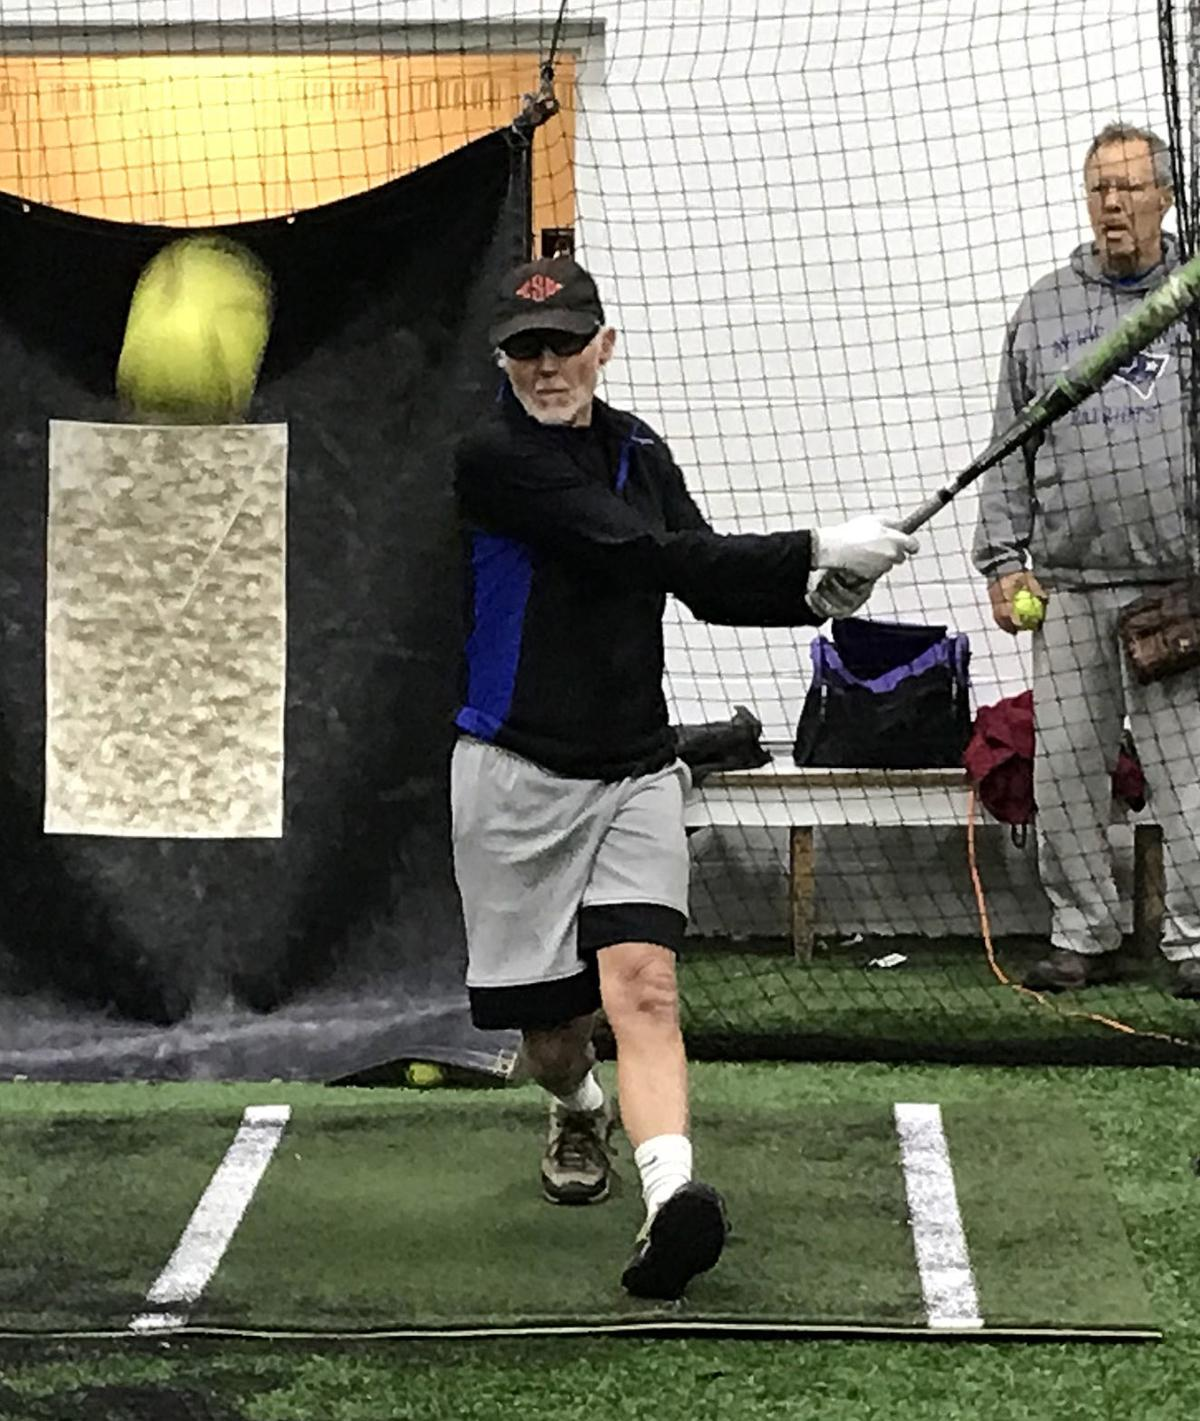 Cape Codgers In Spring Training For A New Season